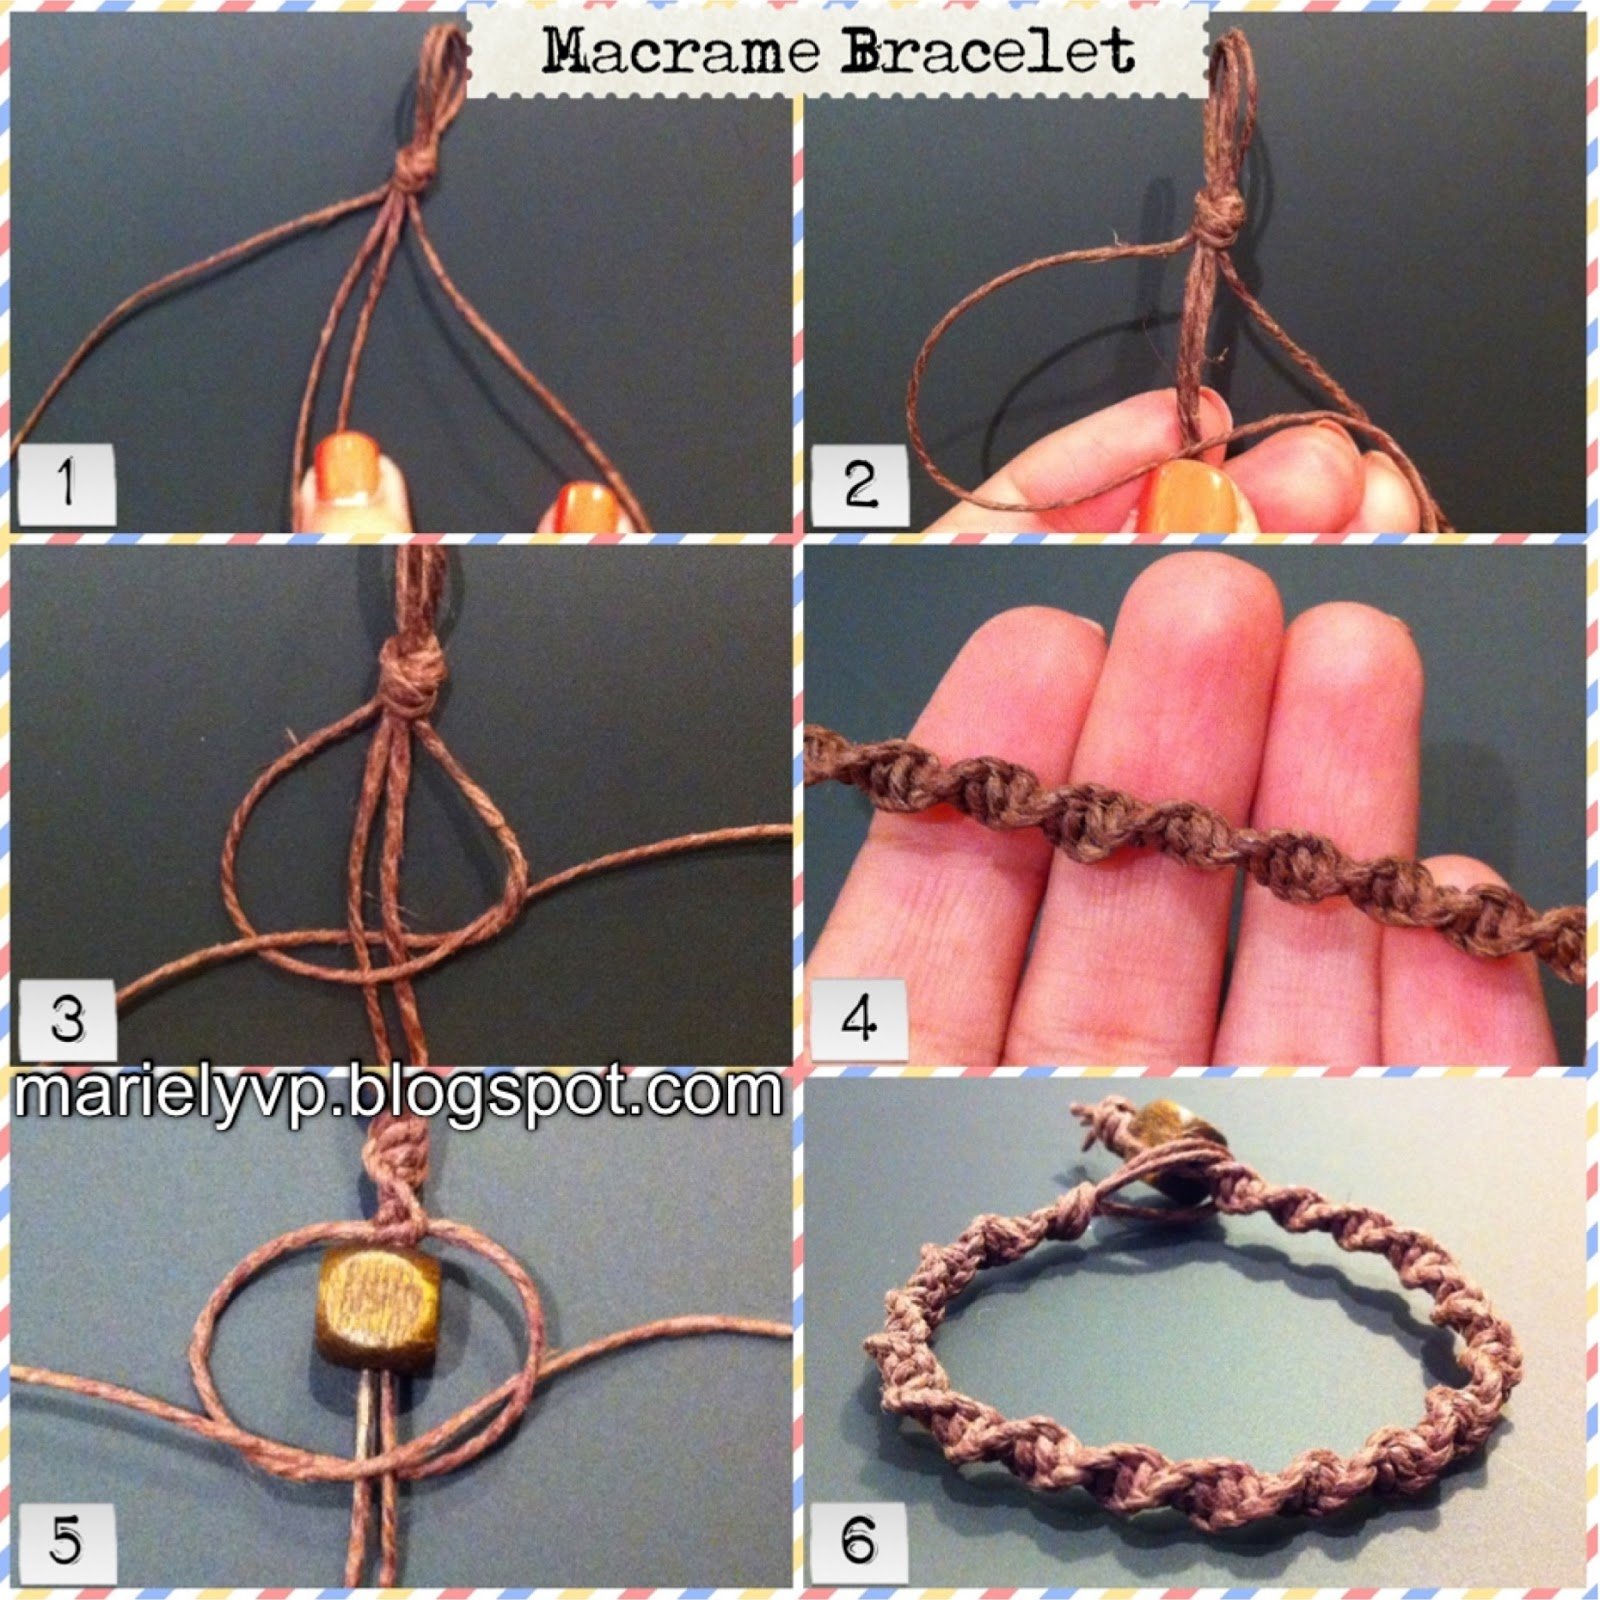 how to make macrame bracelets step by step we read photo tutorial macrame bracelet 9550